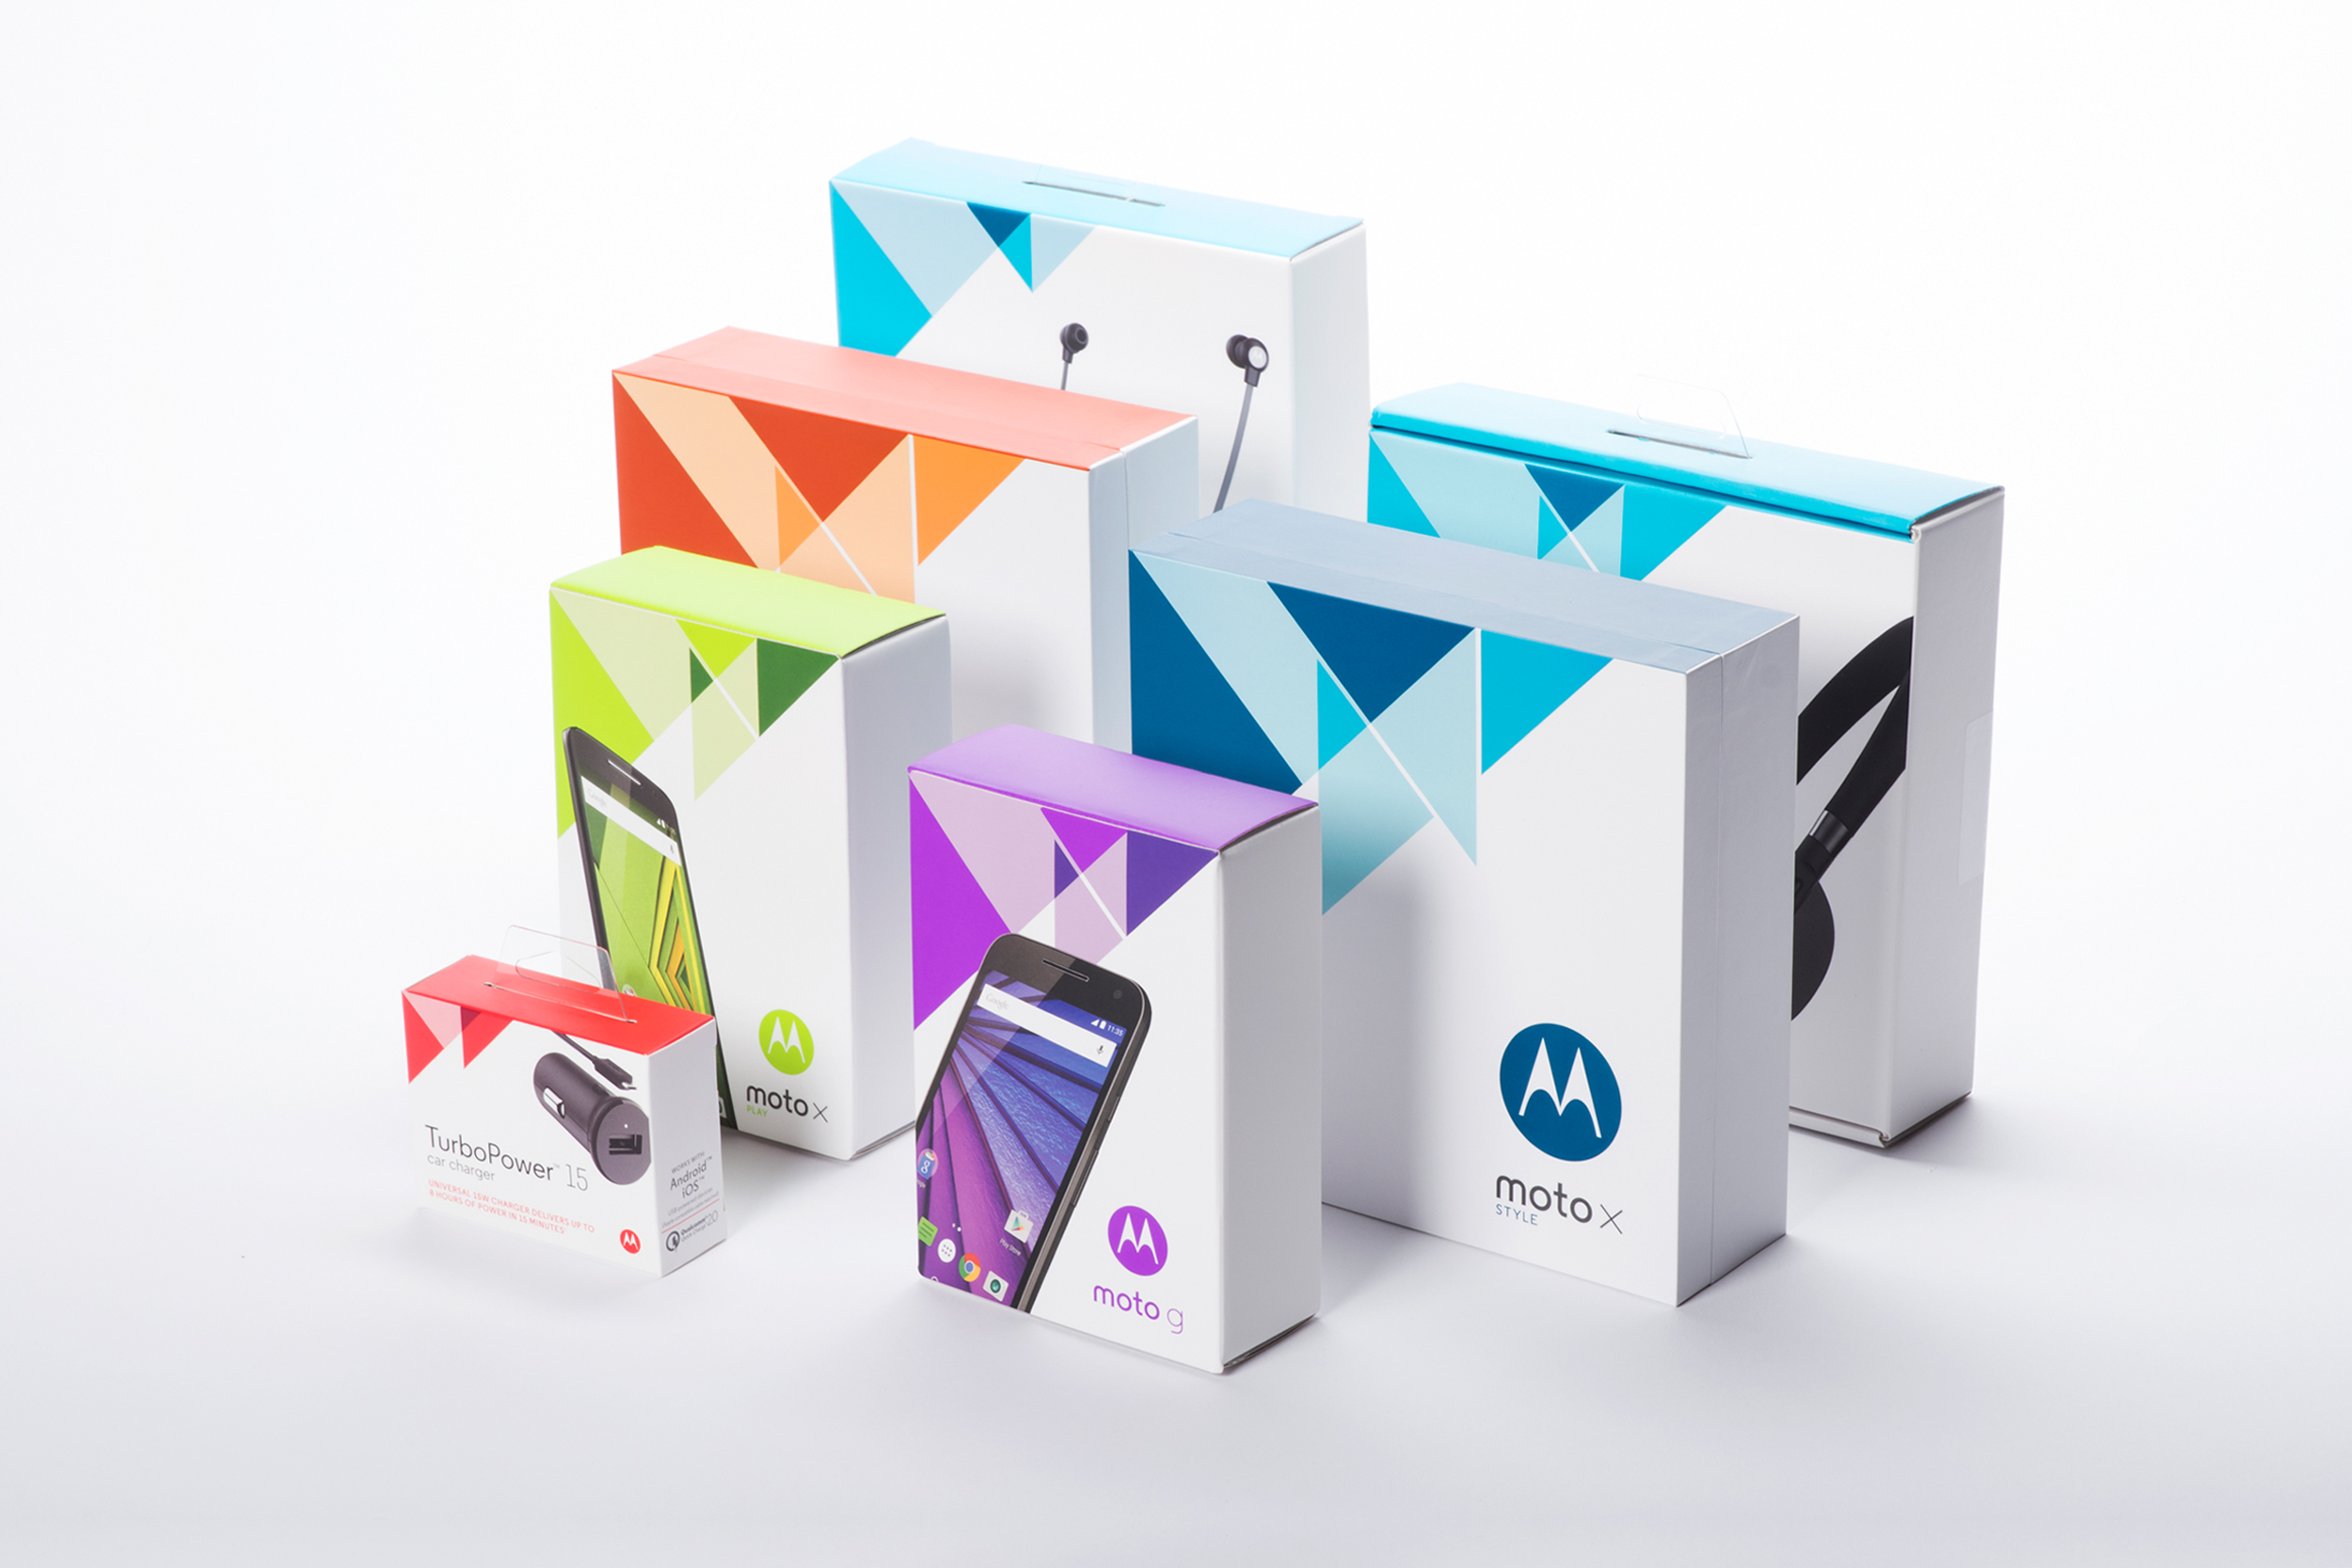 Motorola 2015 Packaging Portfolio  |  Packaging Structure Design